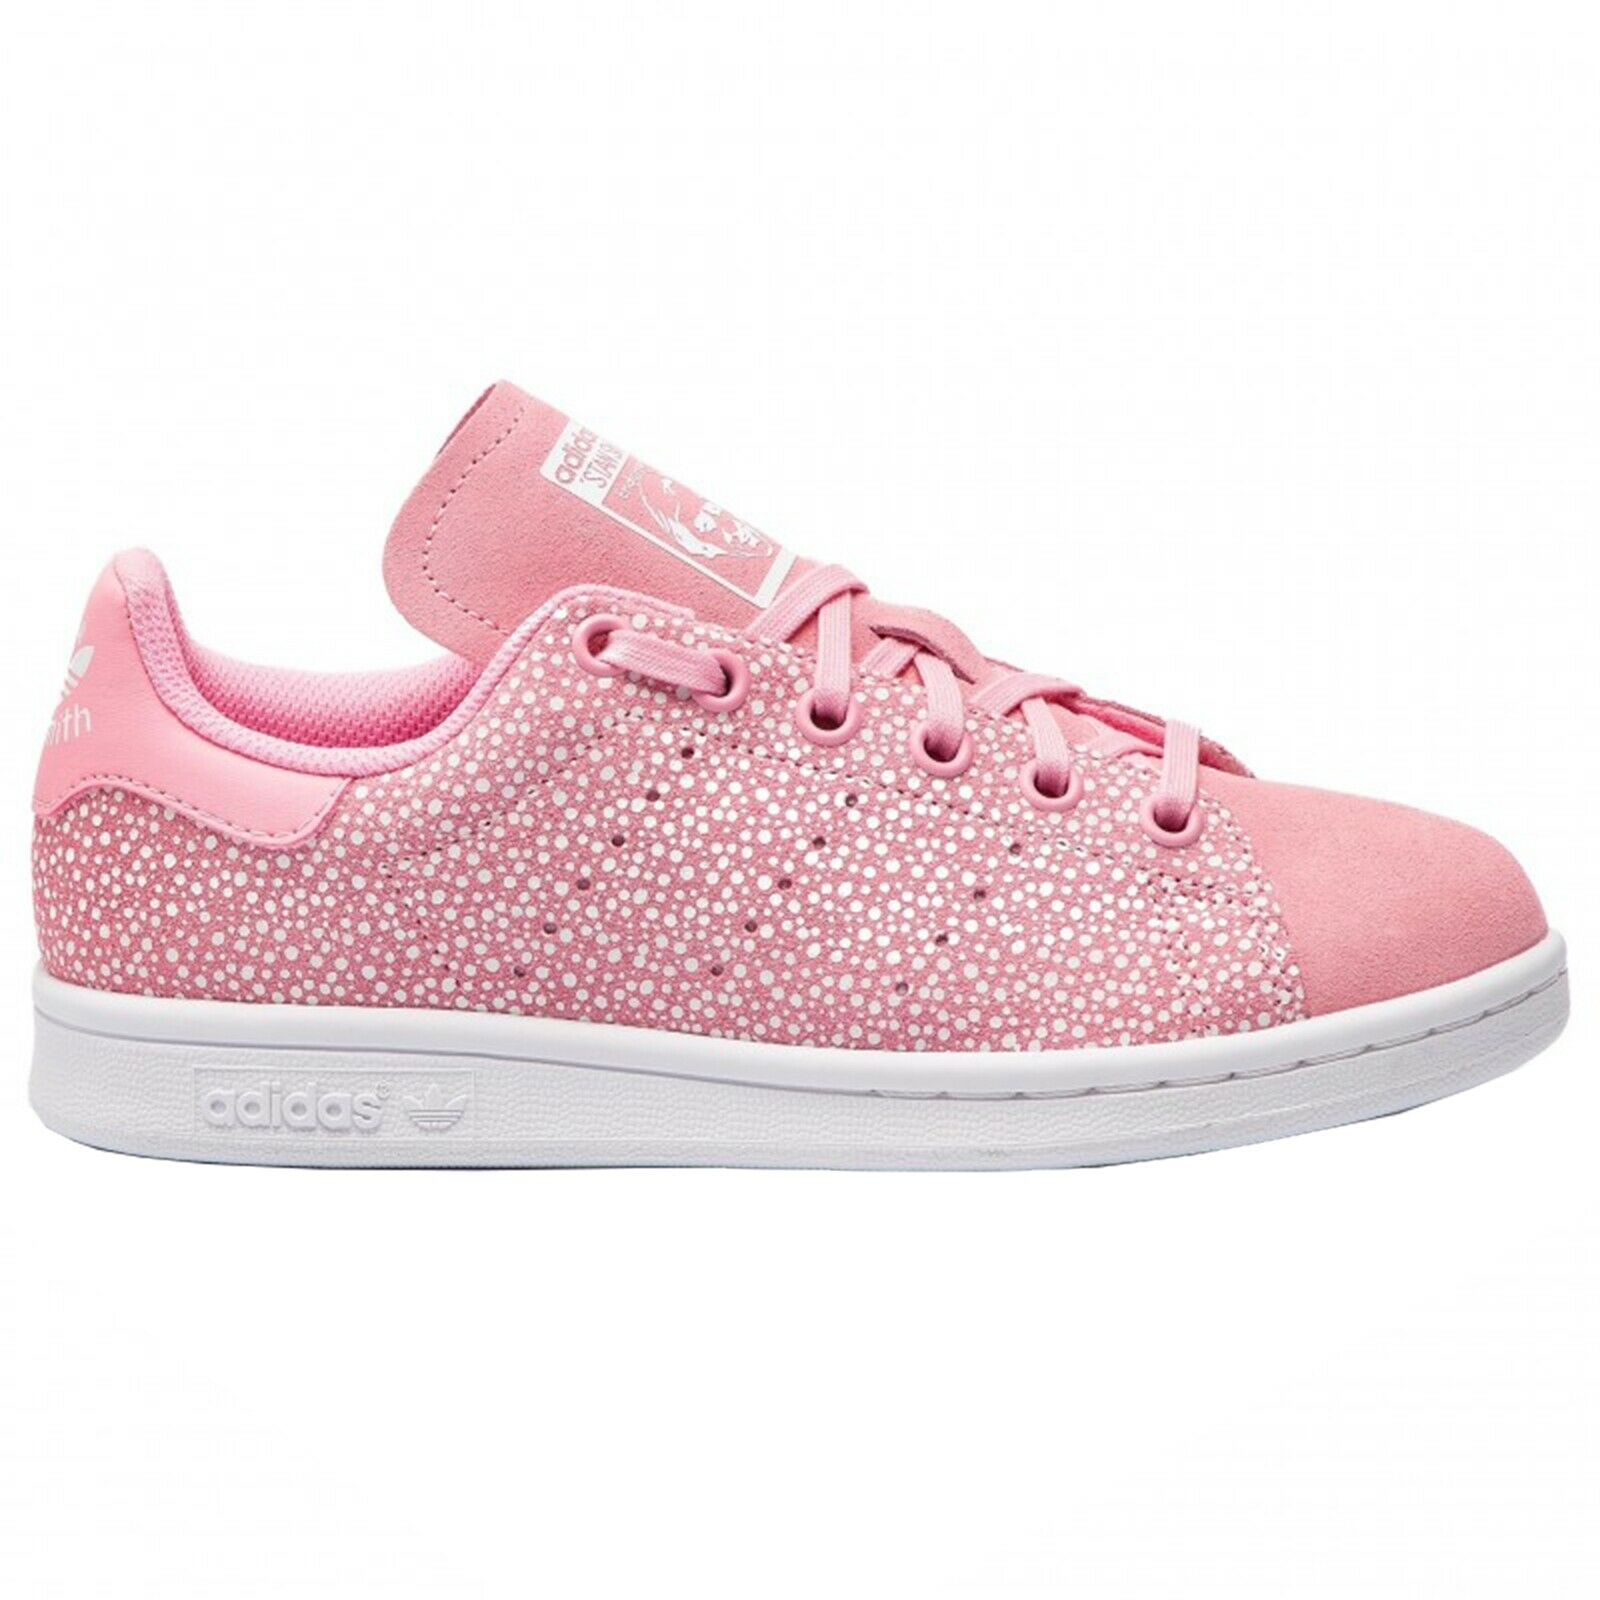 Sneakers ADIDAS STAN SMITH J PINK Women's shoes Girl DB2869